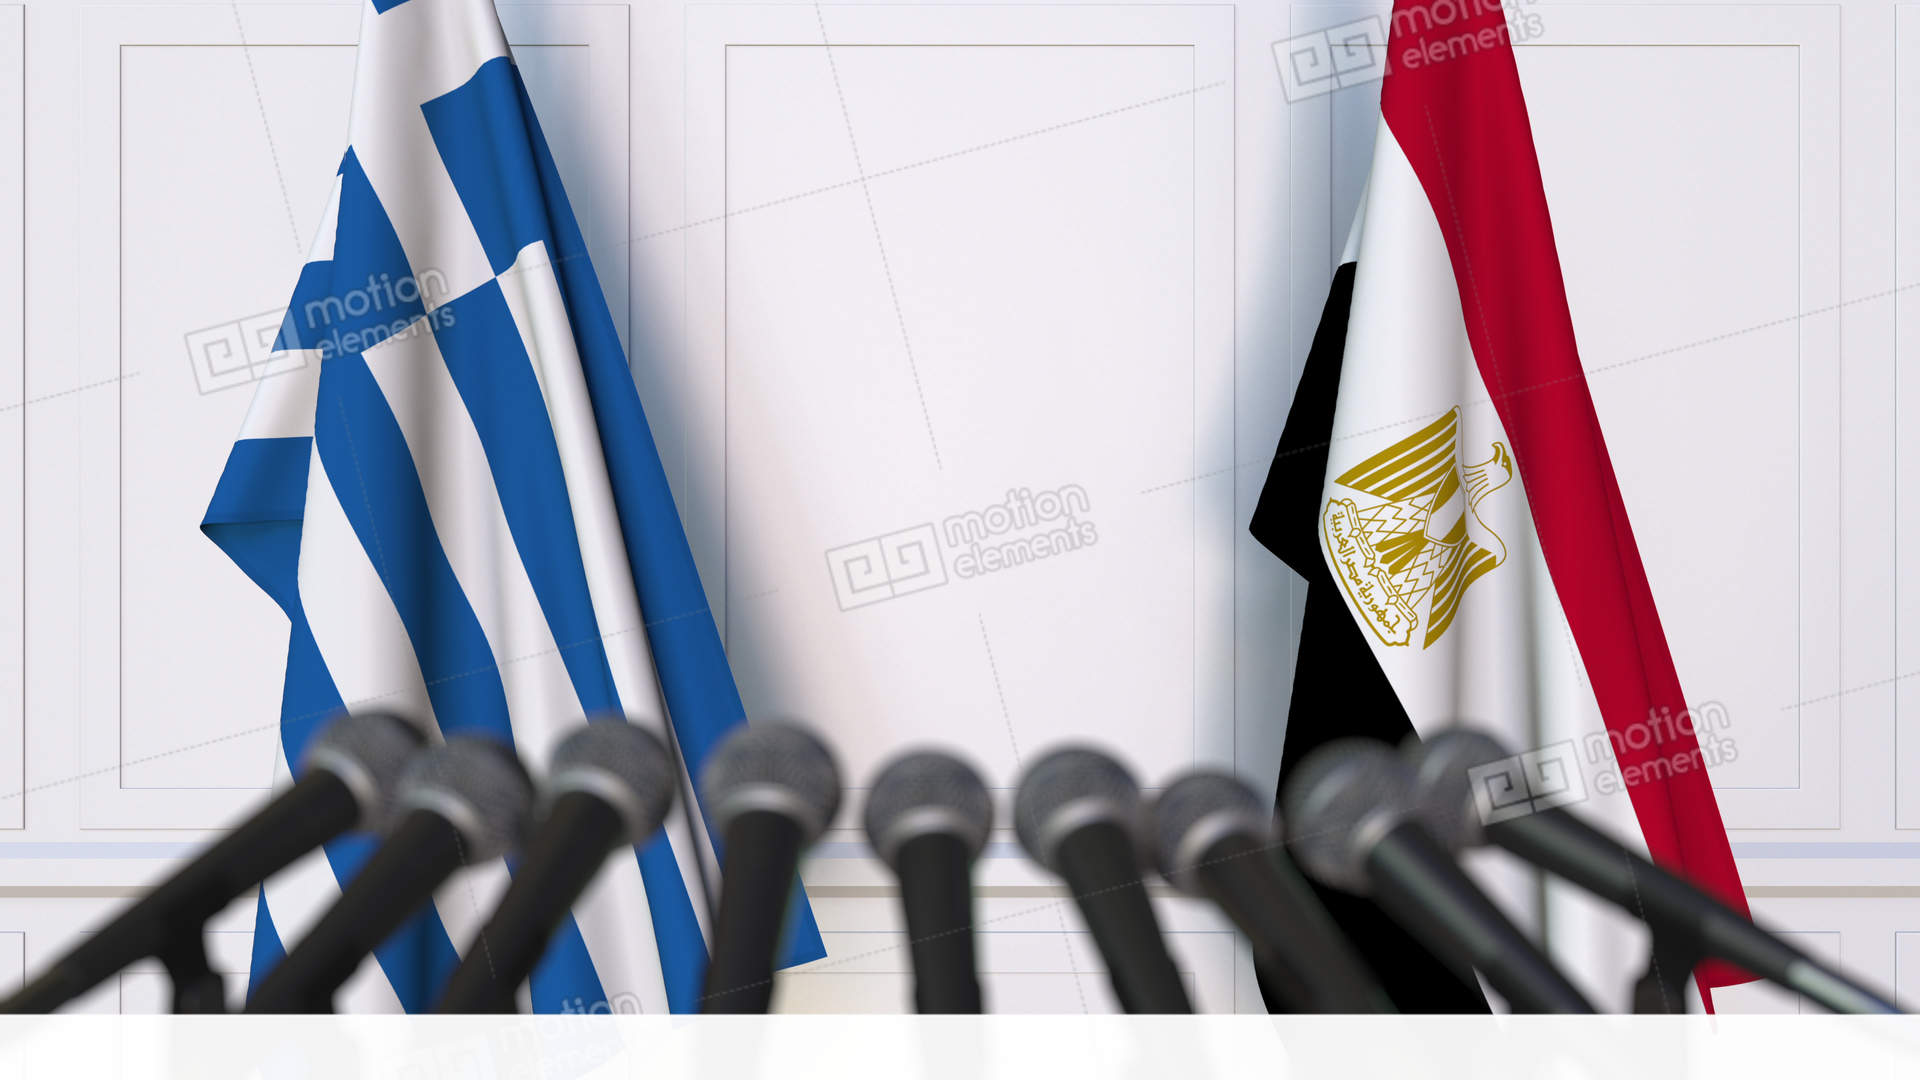 Contact of EgyptAir customer service (phone, email)